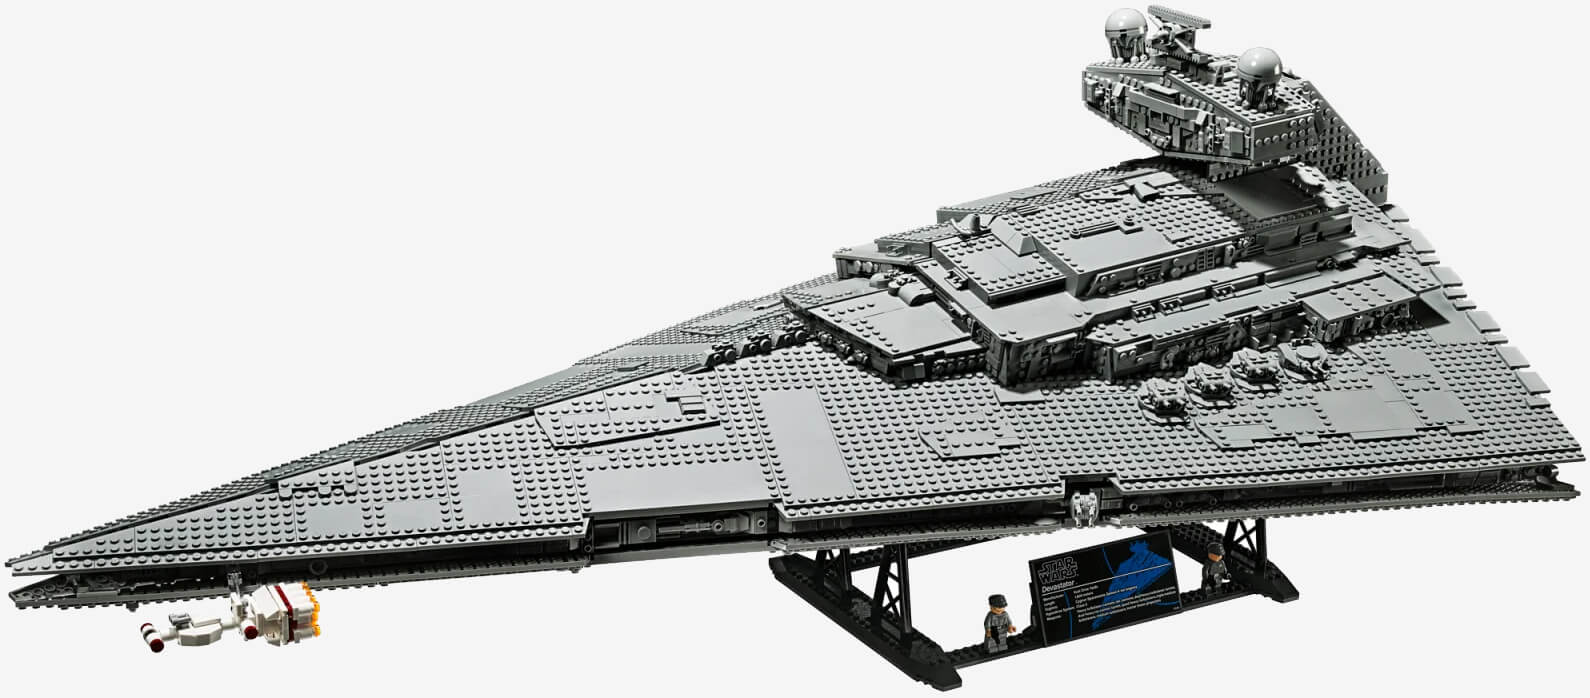 Lego's massive Imperial Star Destroyer arrives in October with 4,700 pieces